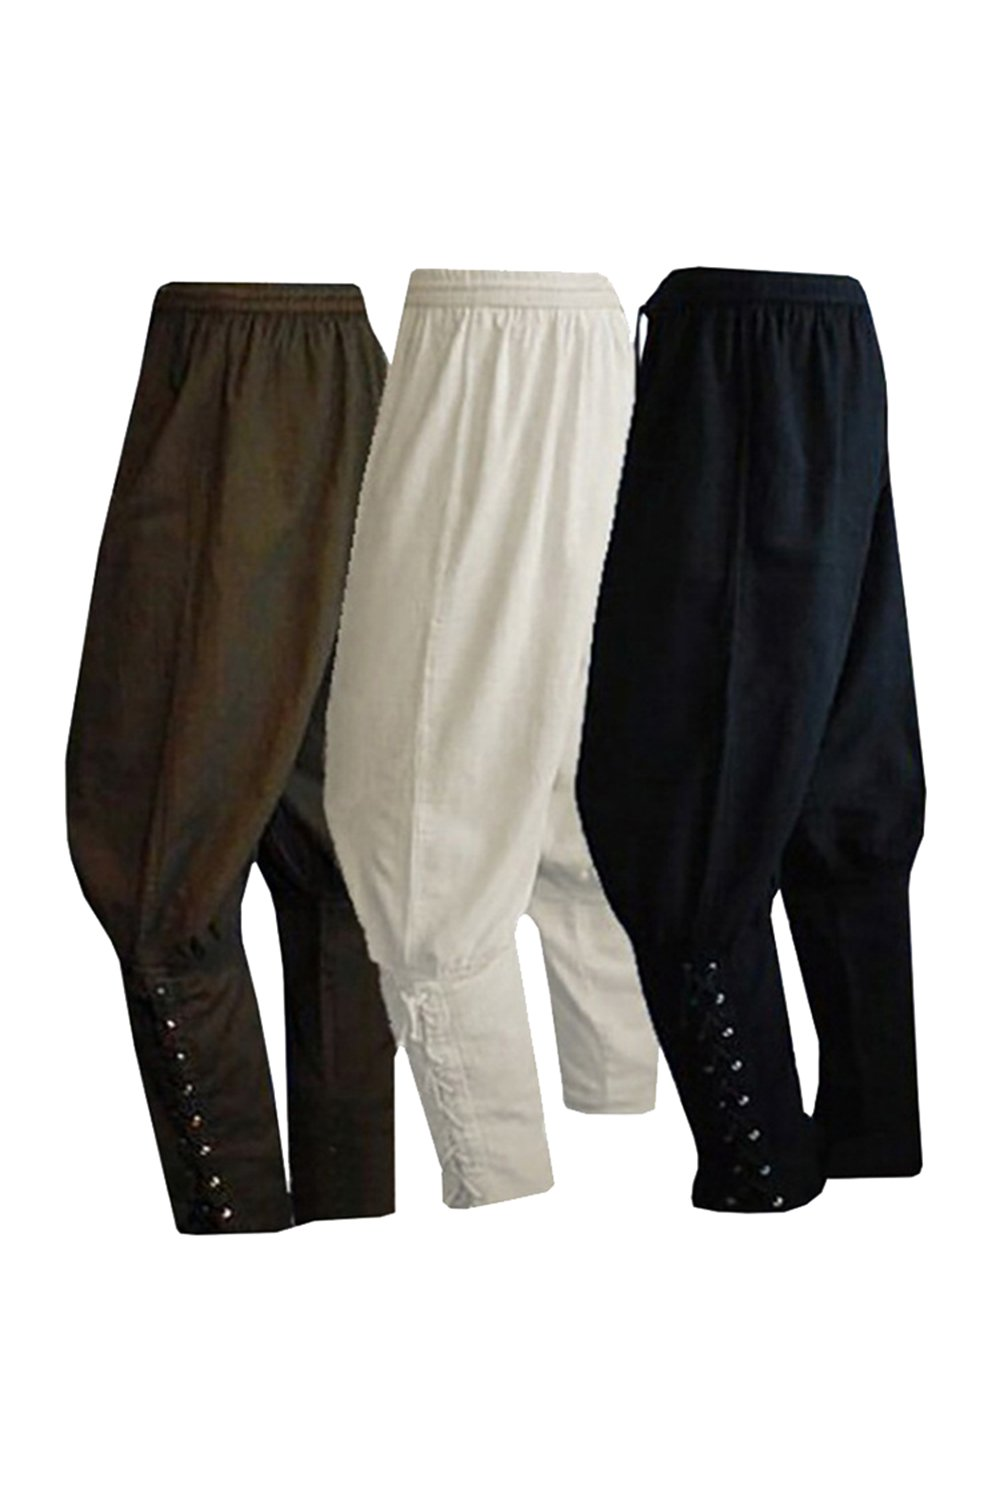 COSMOVIE Men's Viking Pants Medieval Renaissance Gothic Trousers Summer Ankled Banded Pants Pirate Costumes Pants